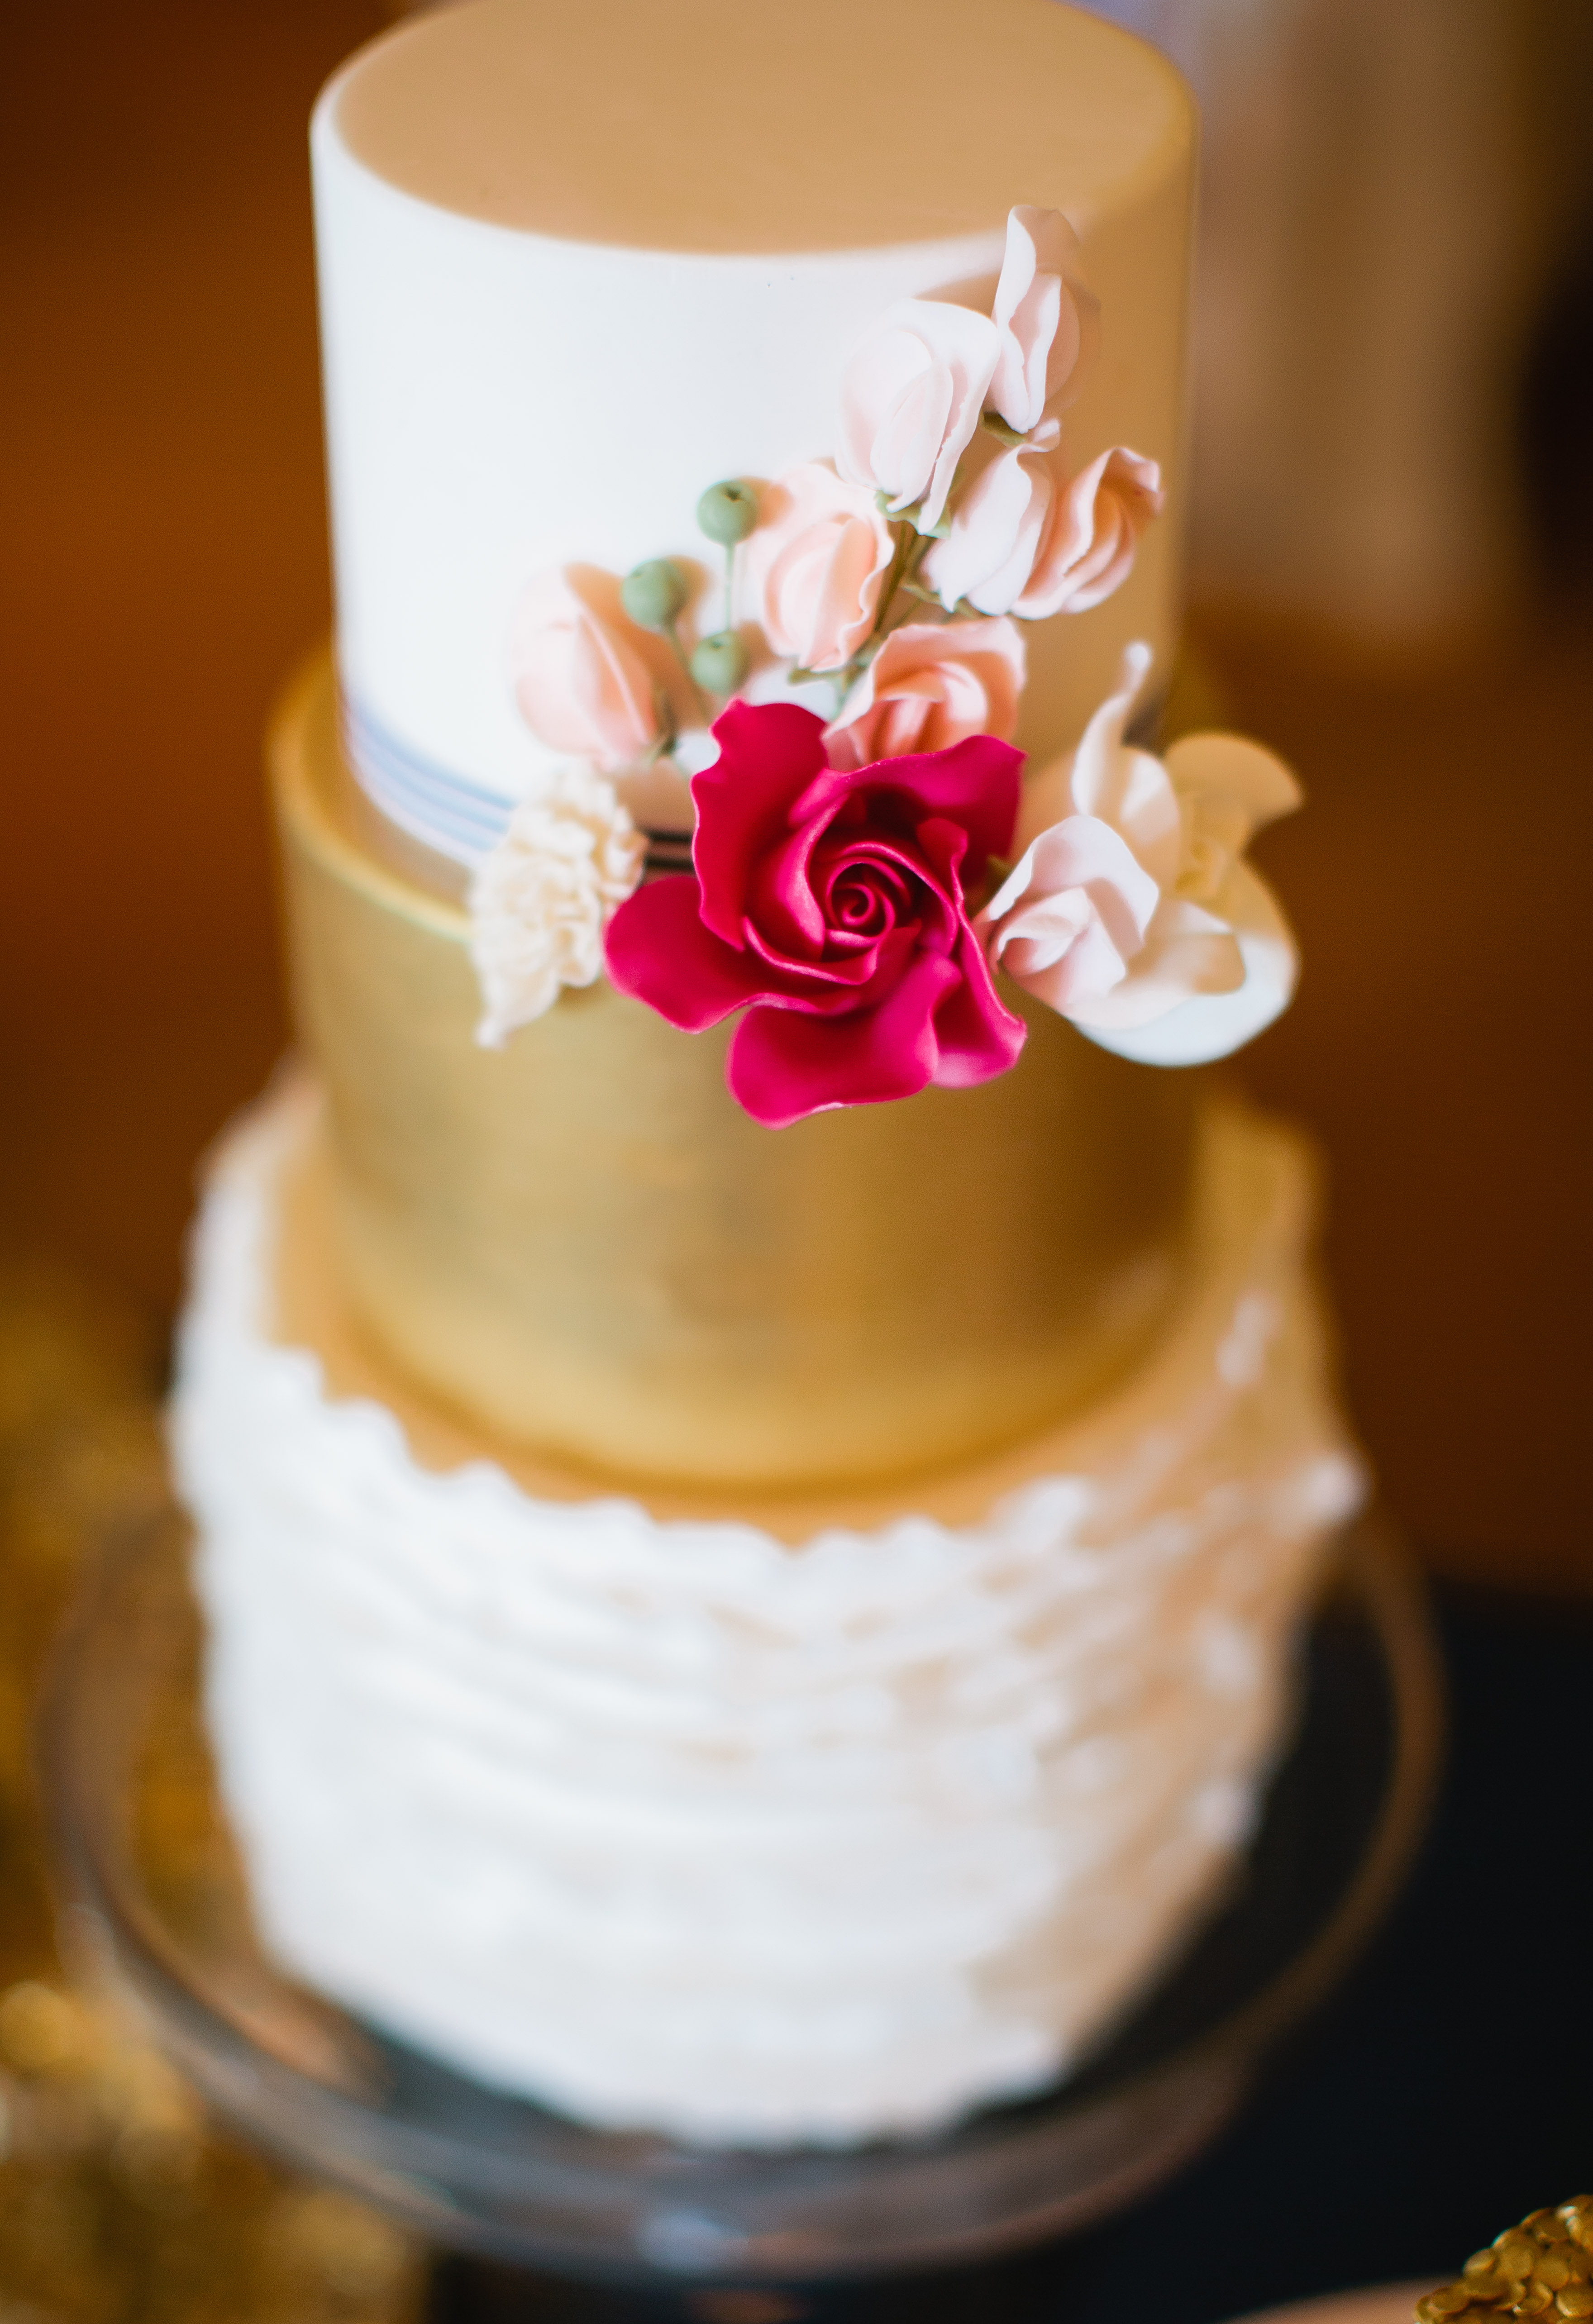 wedding cakes byron bay area rebellyous cake co wedding amp celebration cakes byron bay 24000